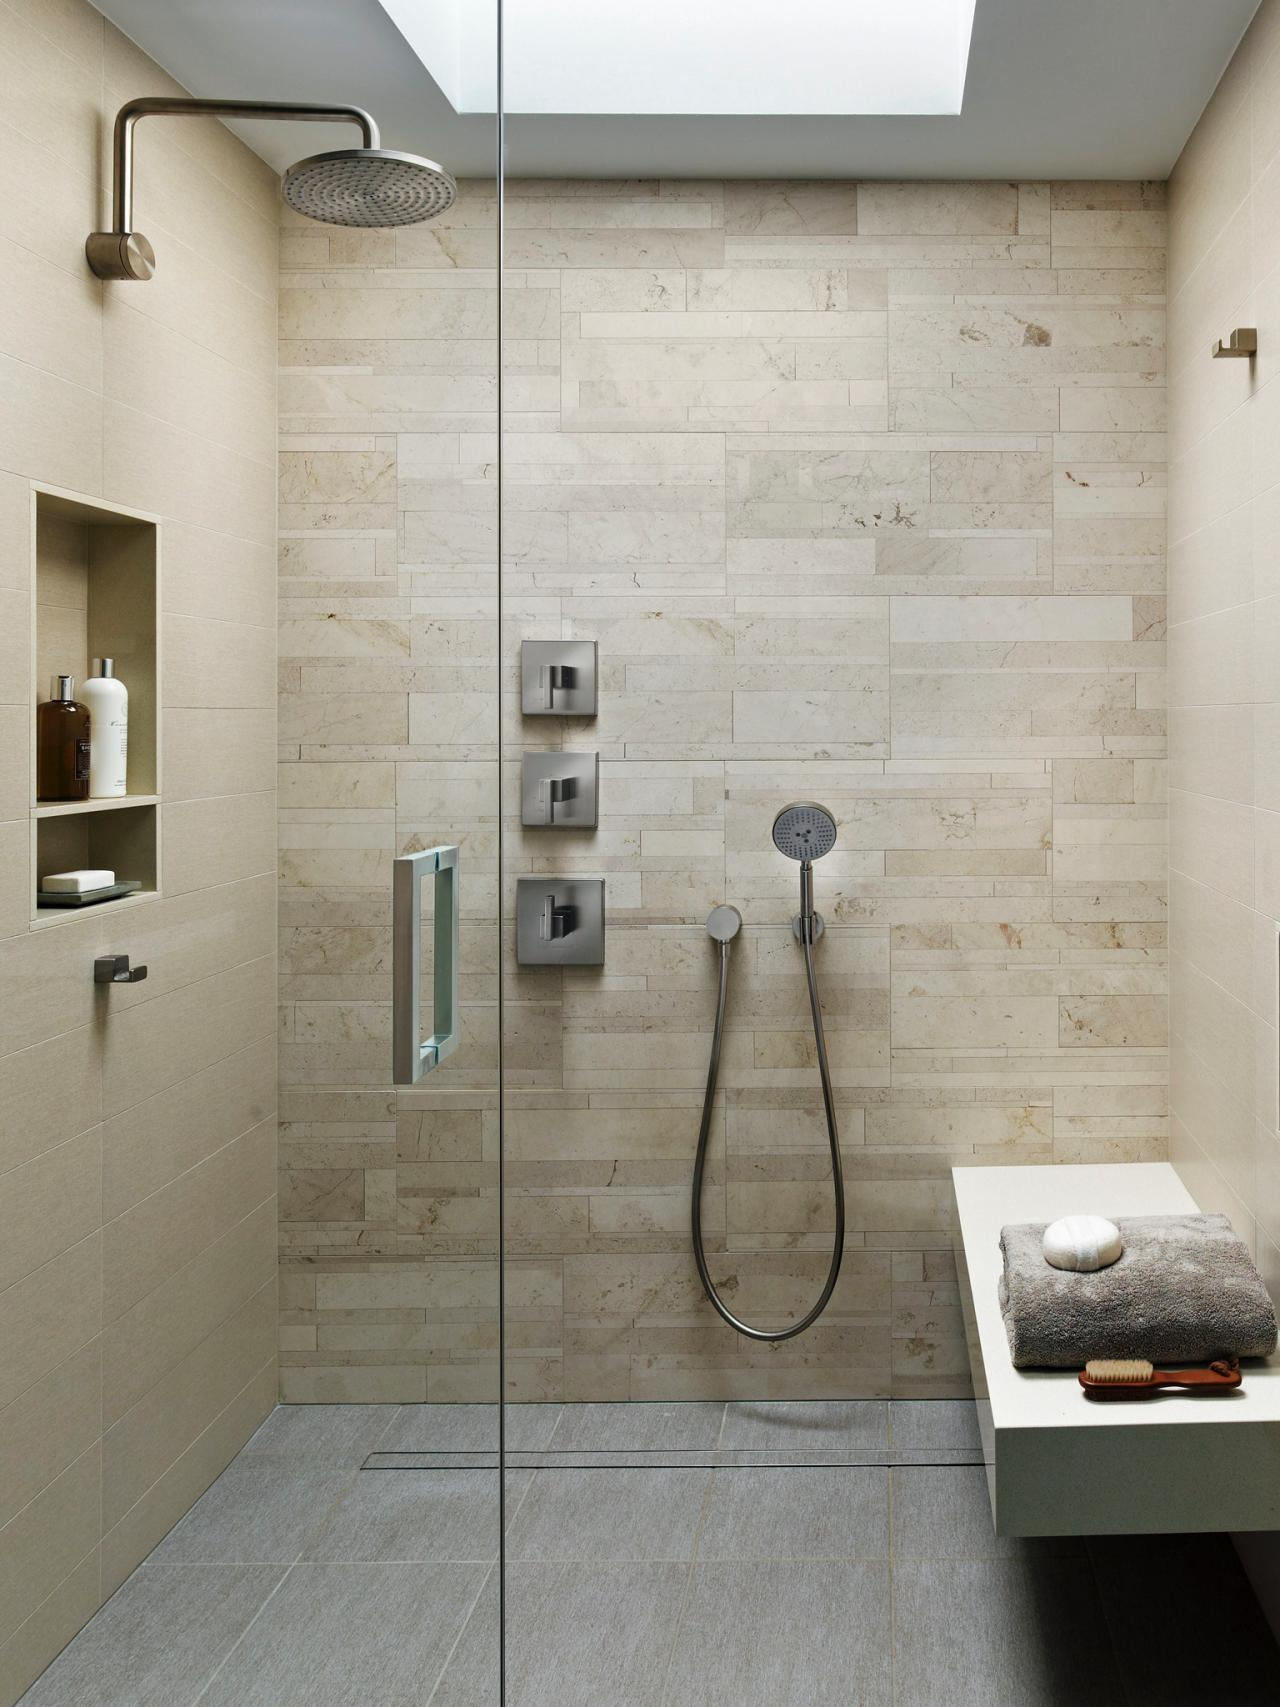 Photos hgtv for Salle de bain zen et naturelle